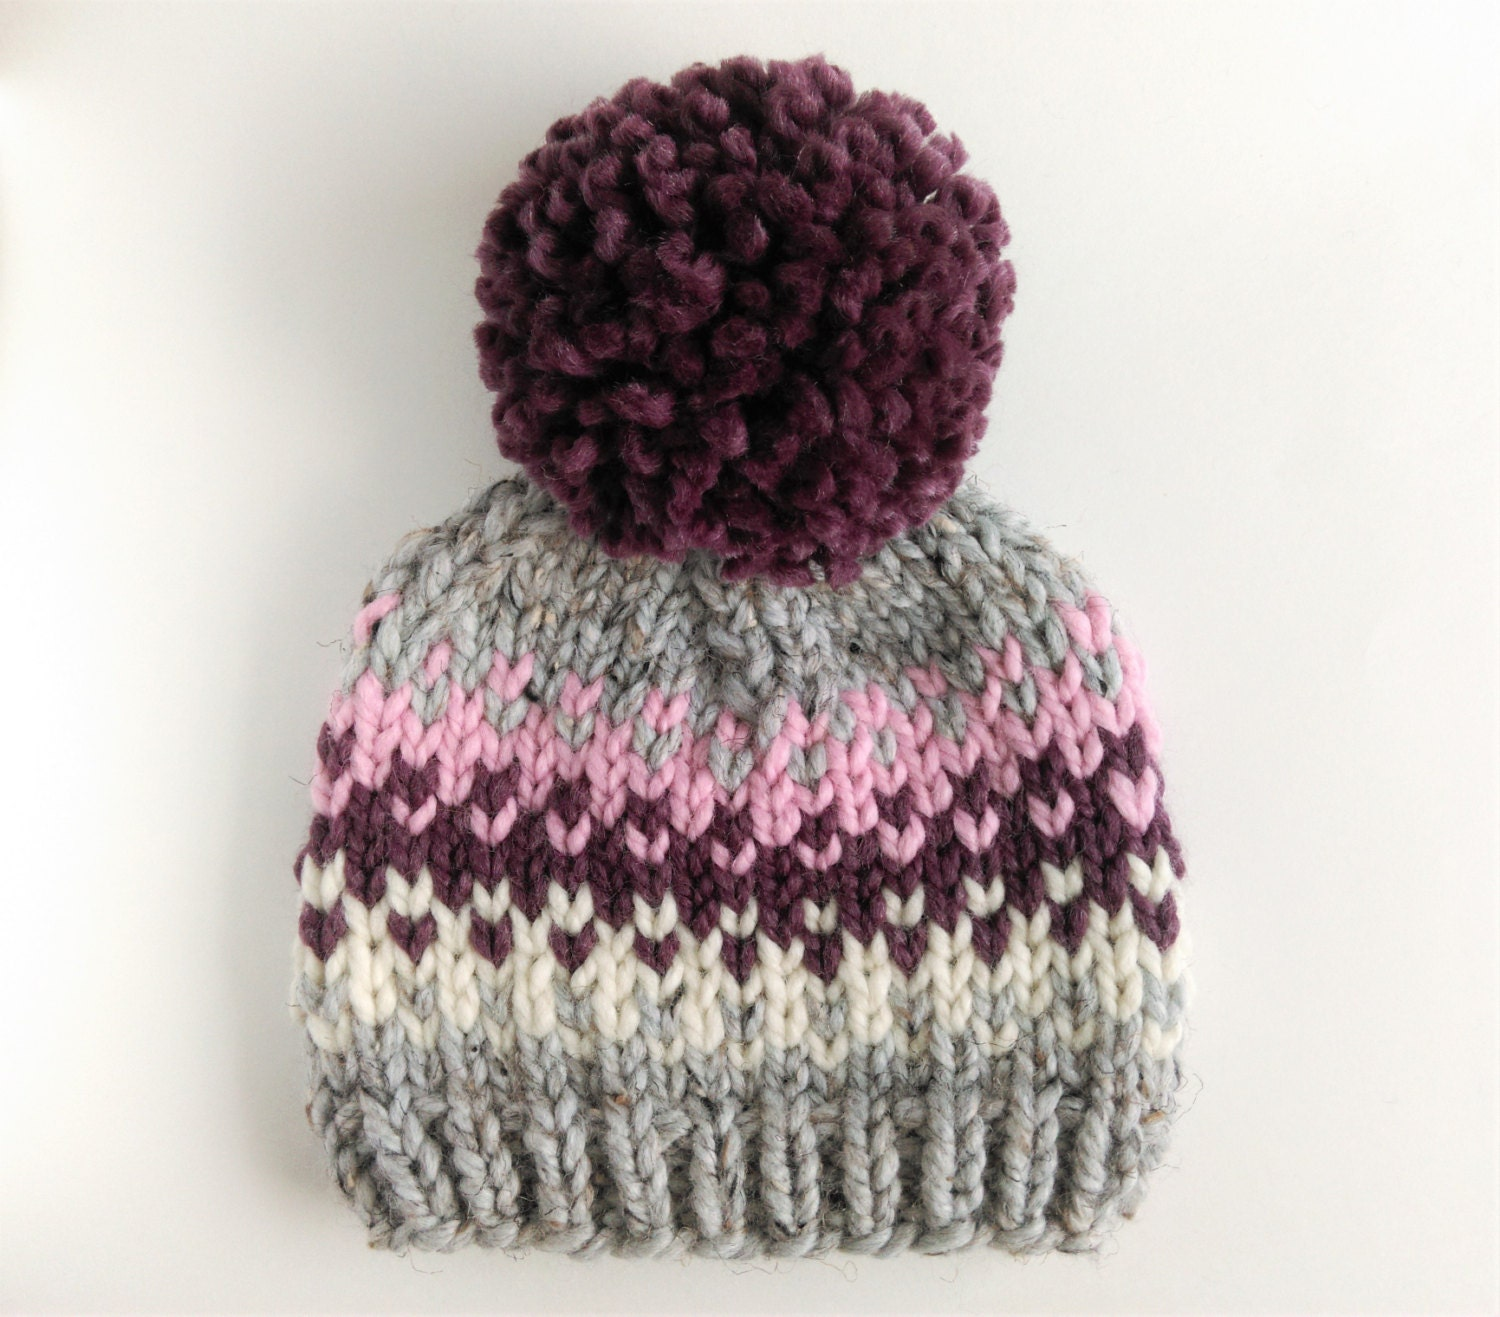 Knit Pom Pom Hat Pattern : Fair Isle Hat Pattern // Pom Pom Hat Knitting Pattern ...